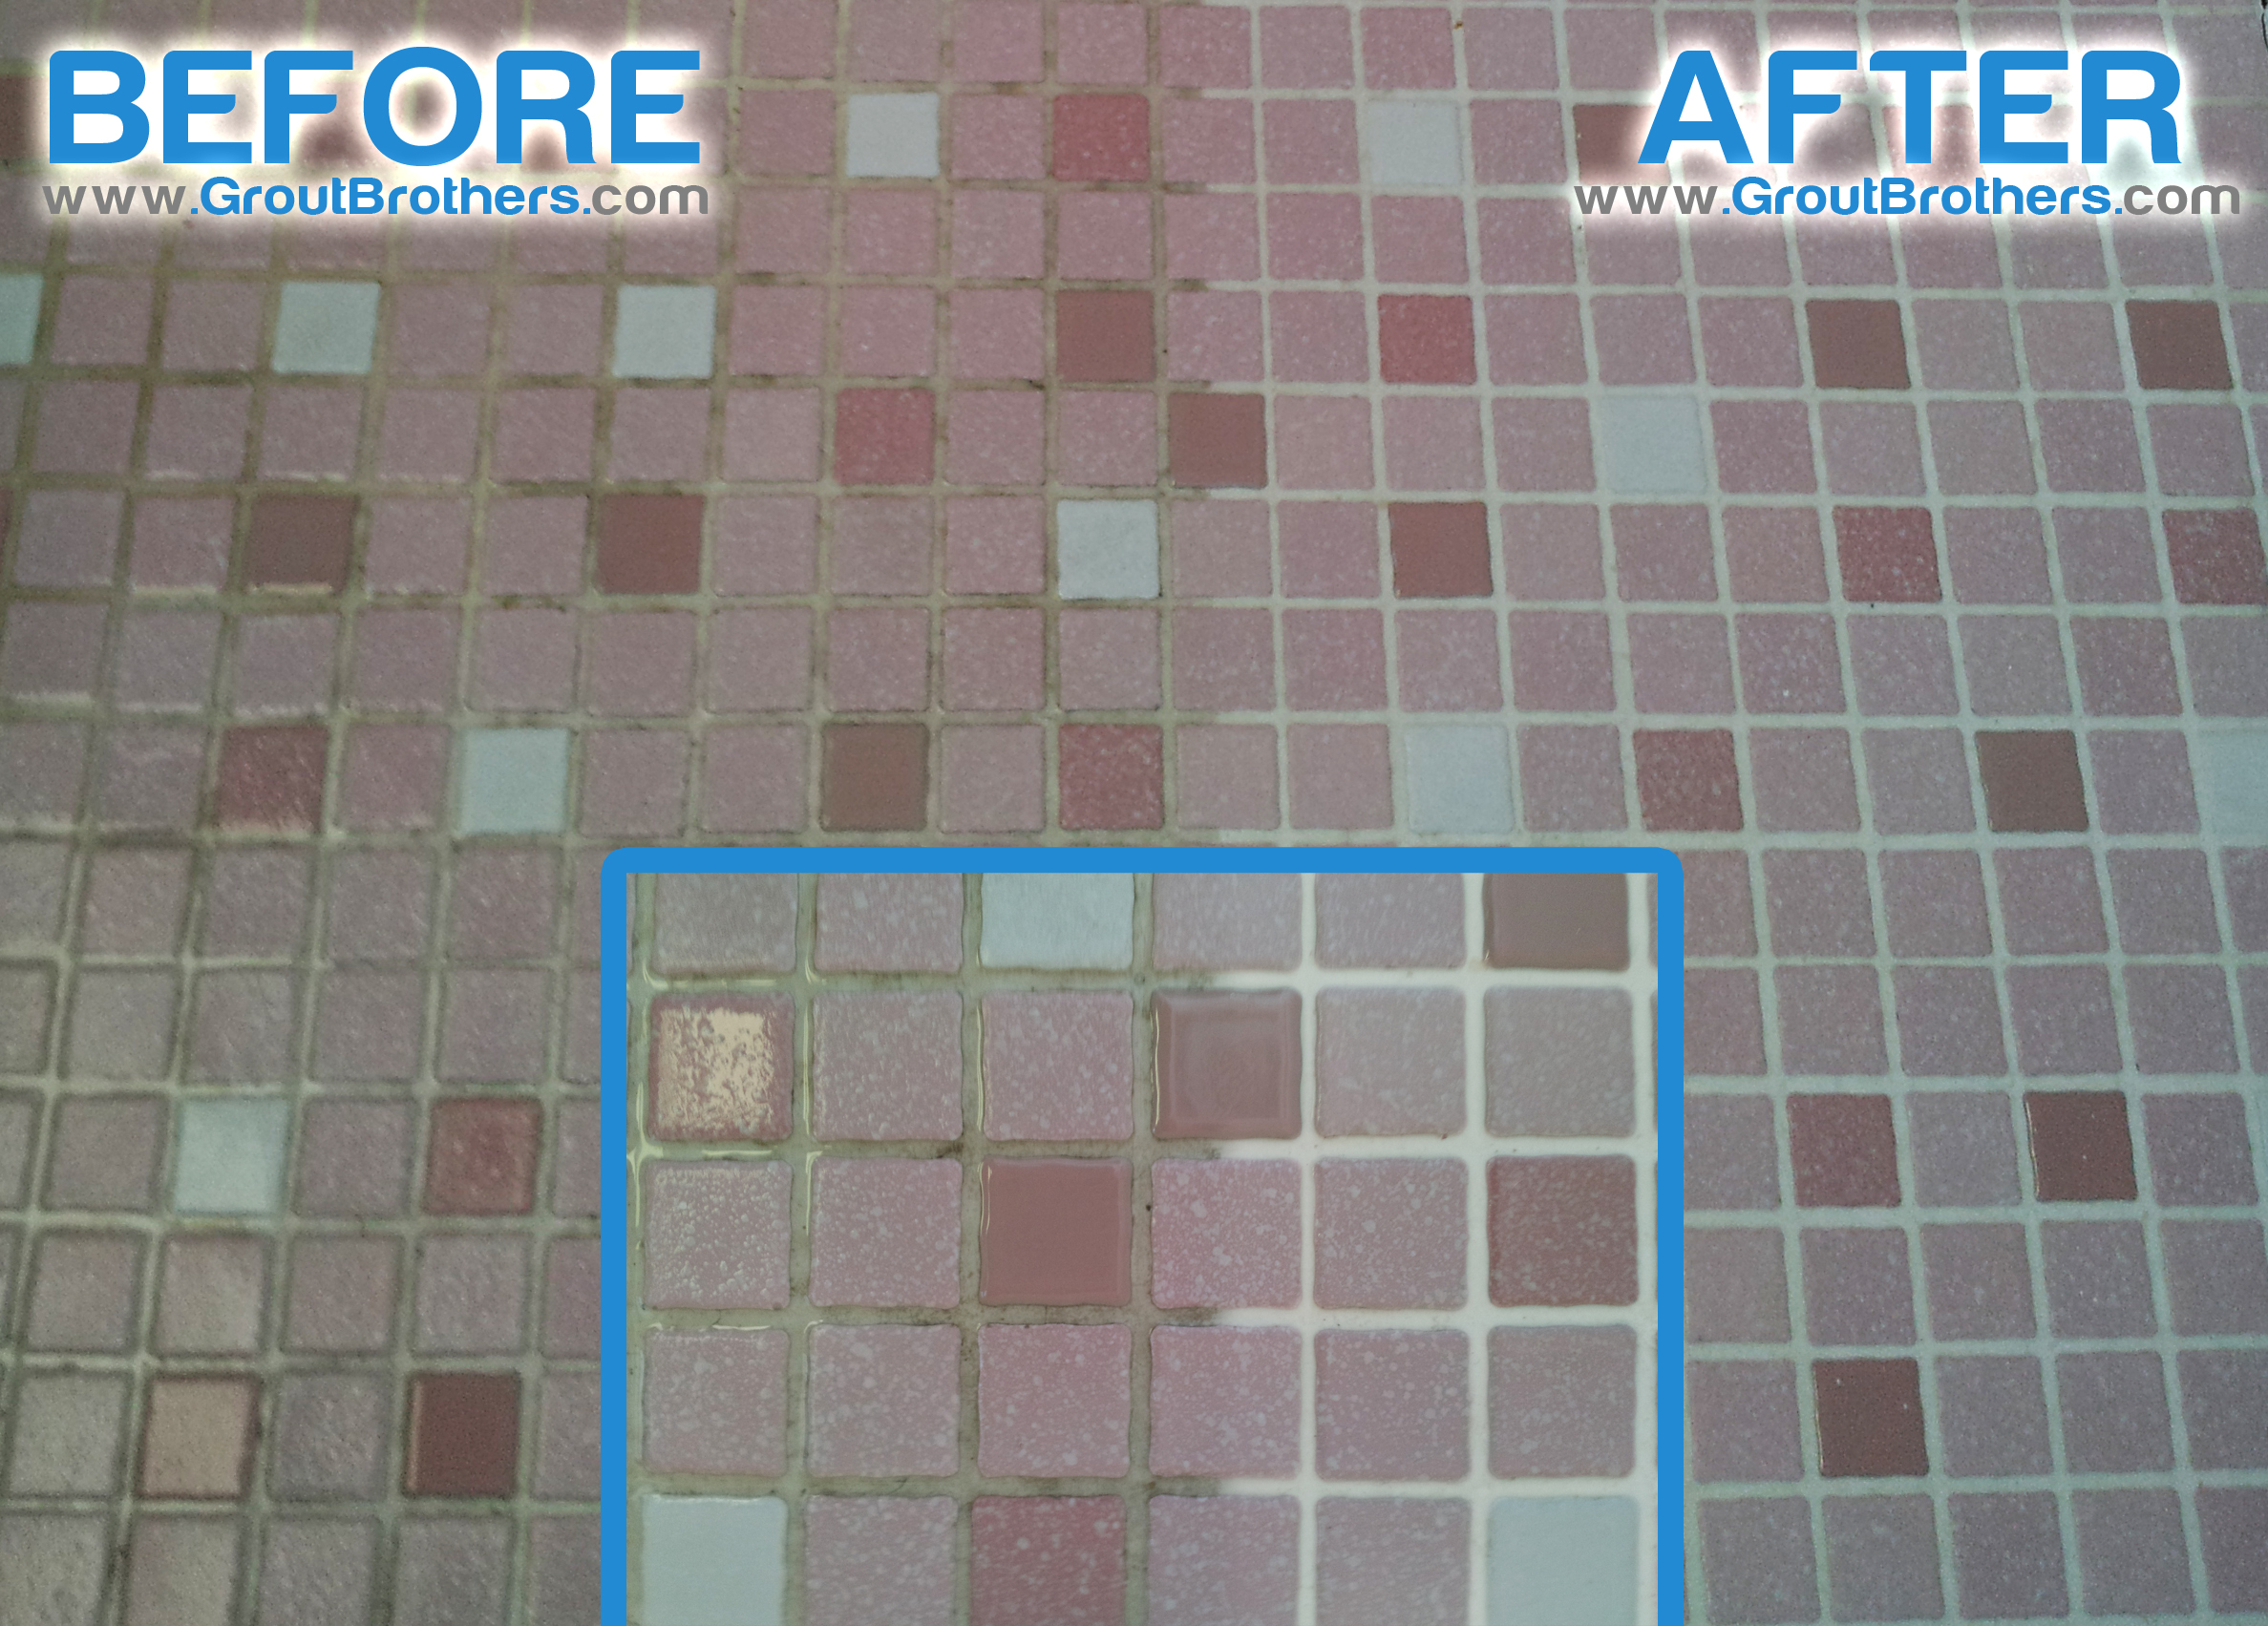 Professional tile and grout cleaning englewood fl grout brothers tile and grout cleaning dailygadgetfo Images